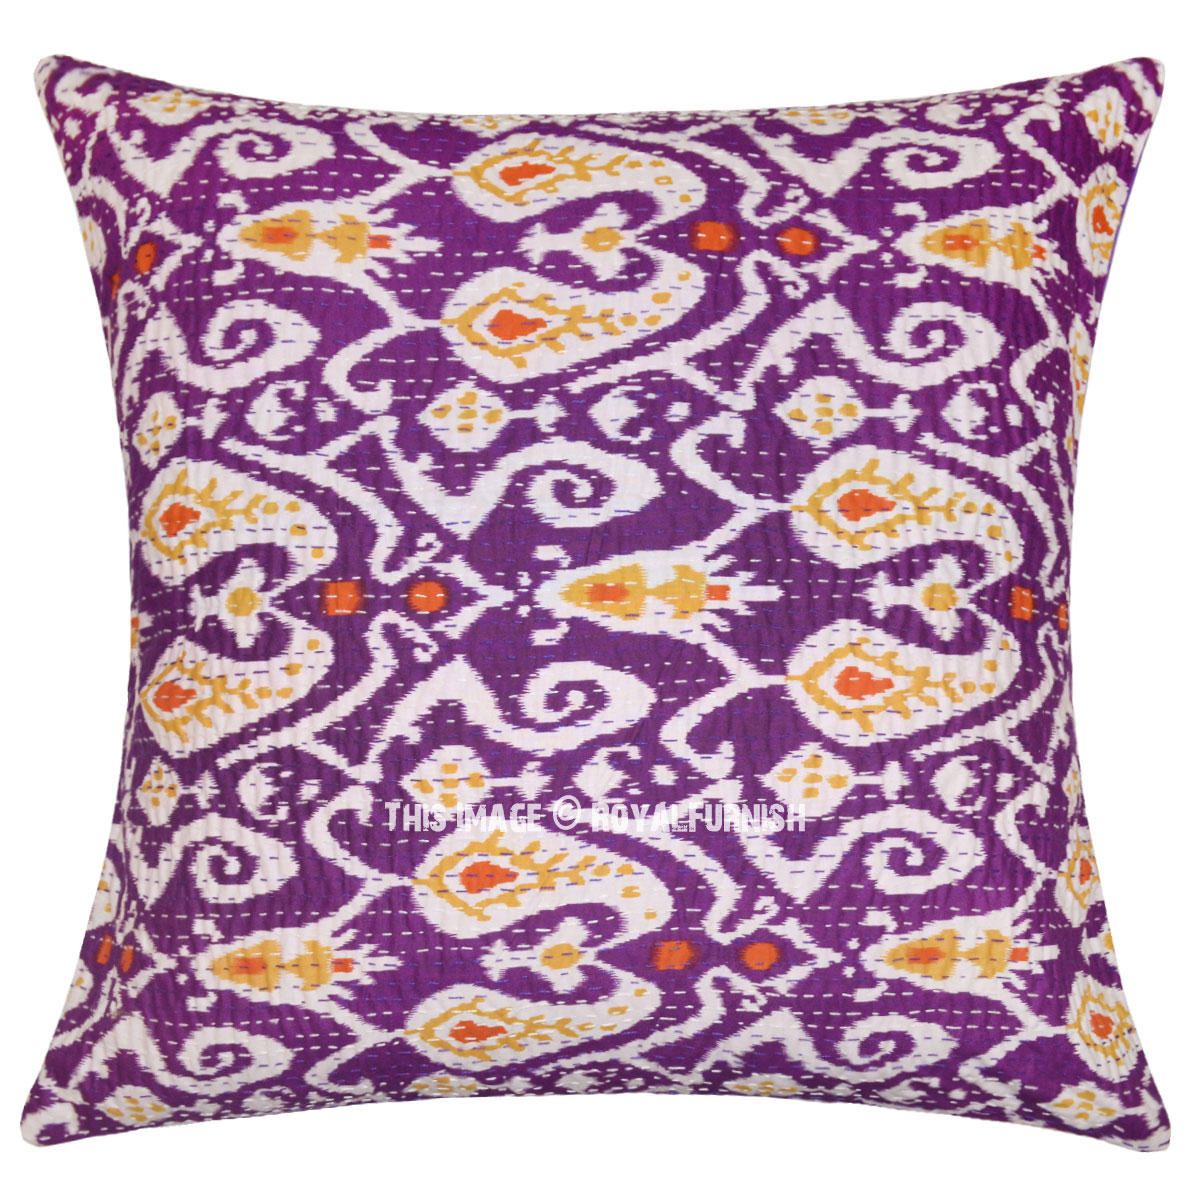 Large Purple Decorative Paisley Pattern Cotton Throw Pillow Cushion Cover - RoyalFurnish.com